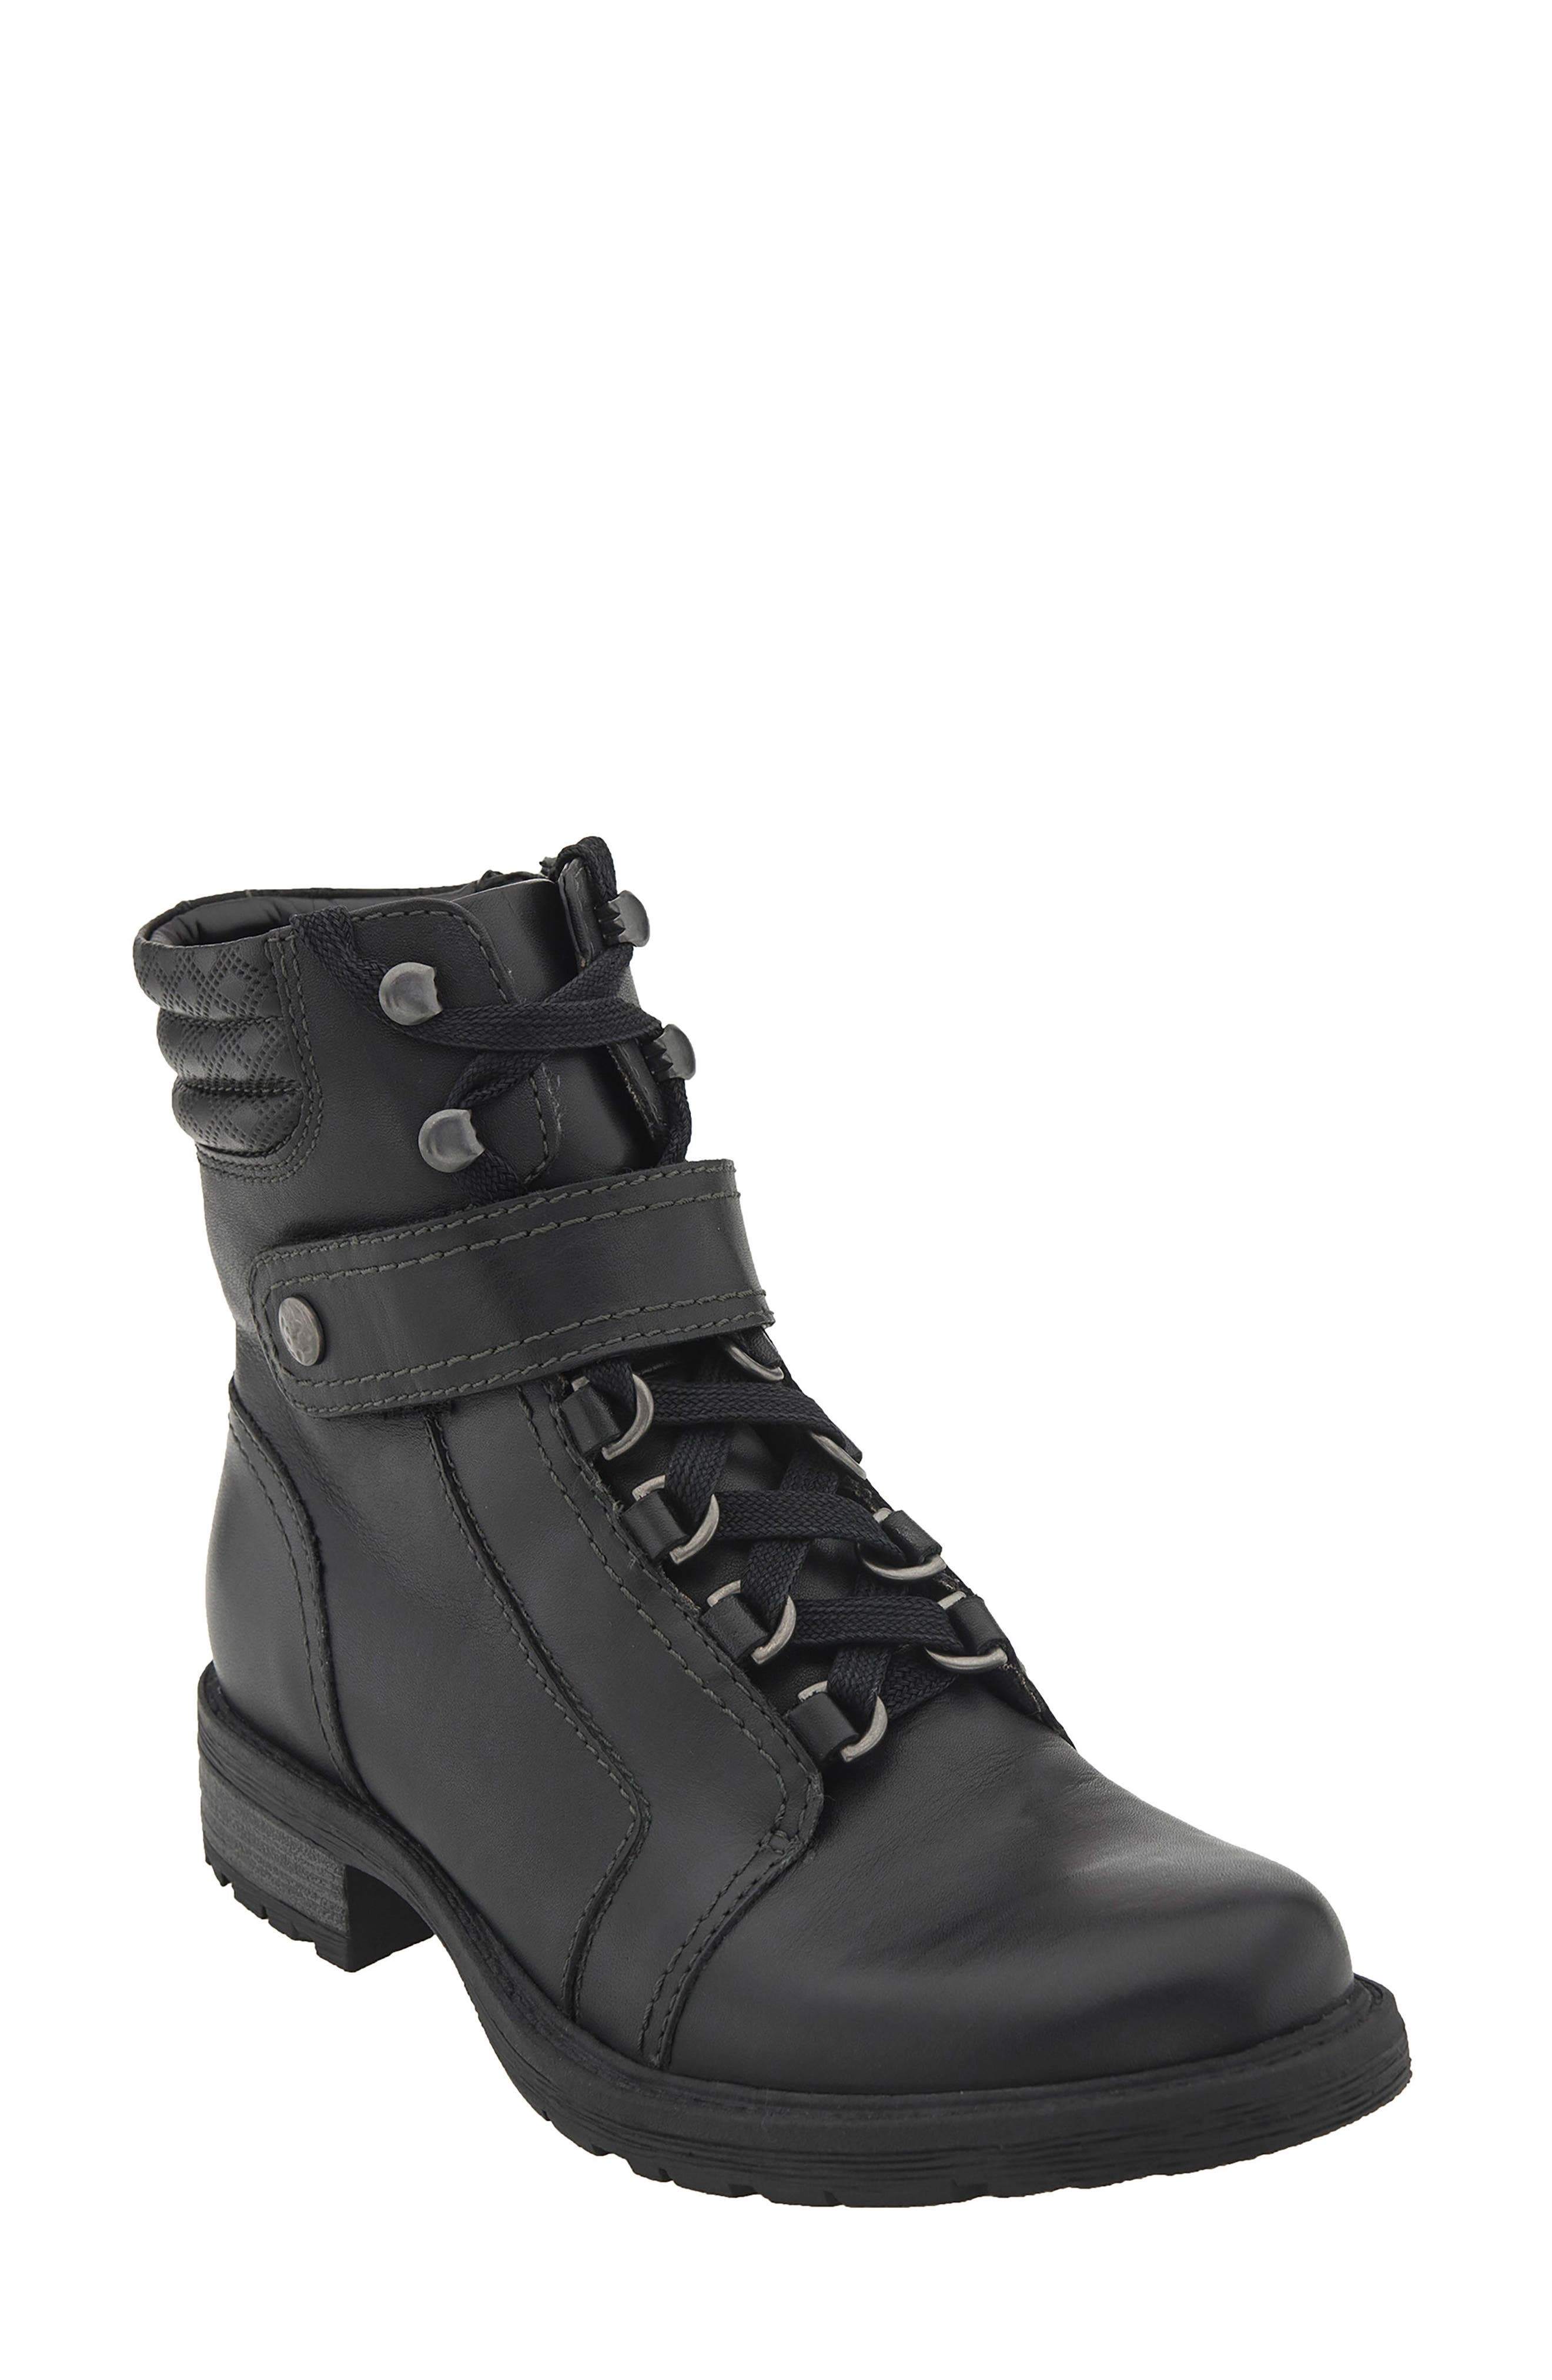 Everest Lace-Up Boot,                             Main thumbnail 1, color,                             001